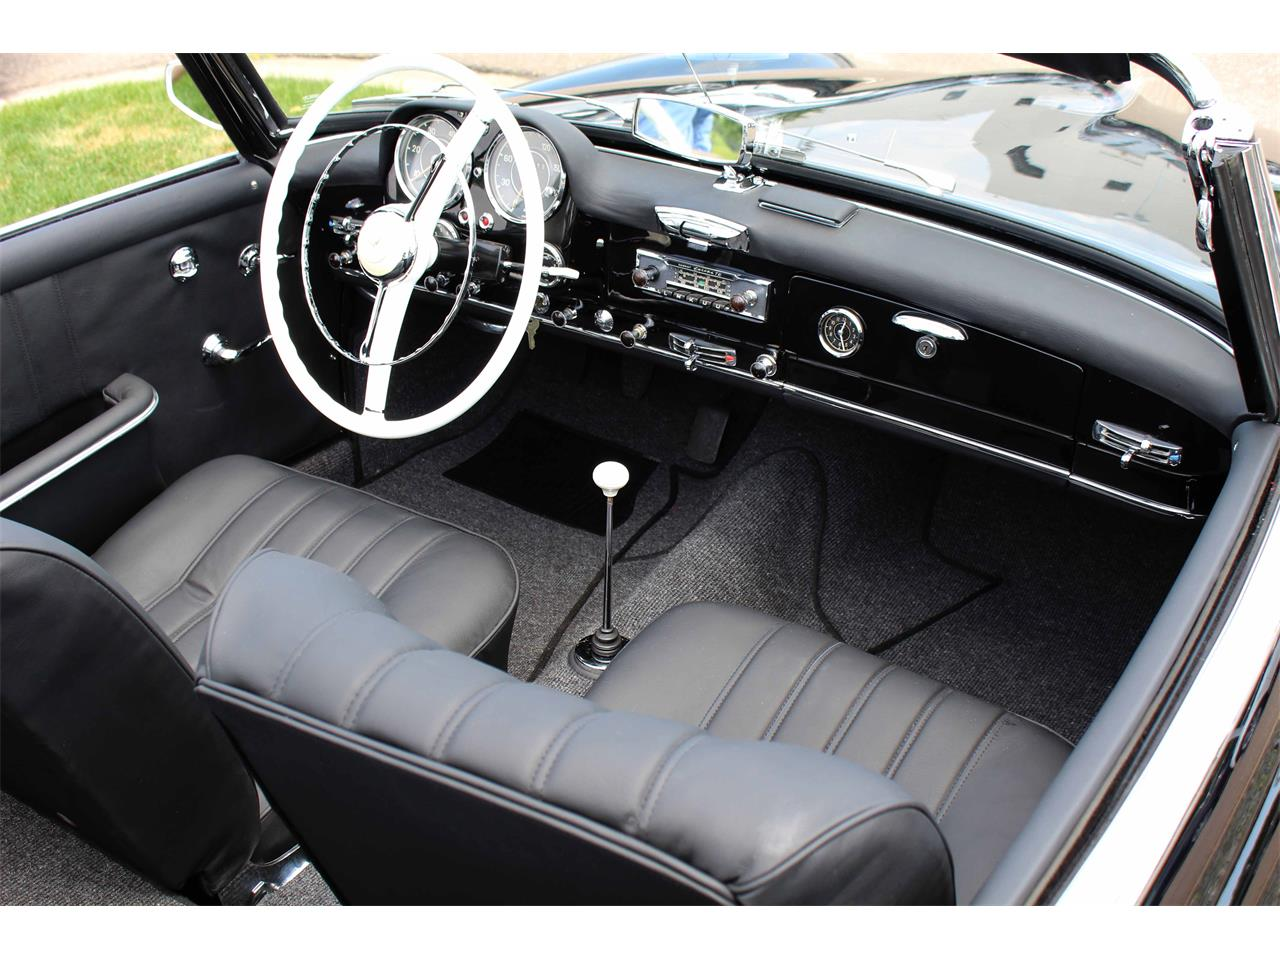 Large Picture of 1960 Mercedes-Benz 190SL located in Minnesota - $299,900.00 Offered by Jaguar Land Rover Minneapolis - NULS